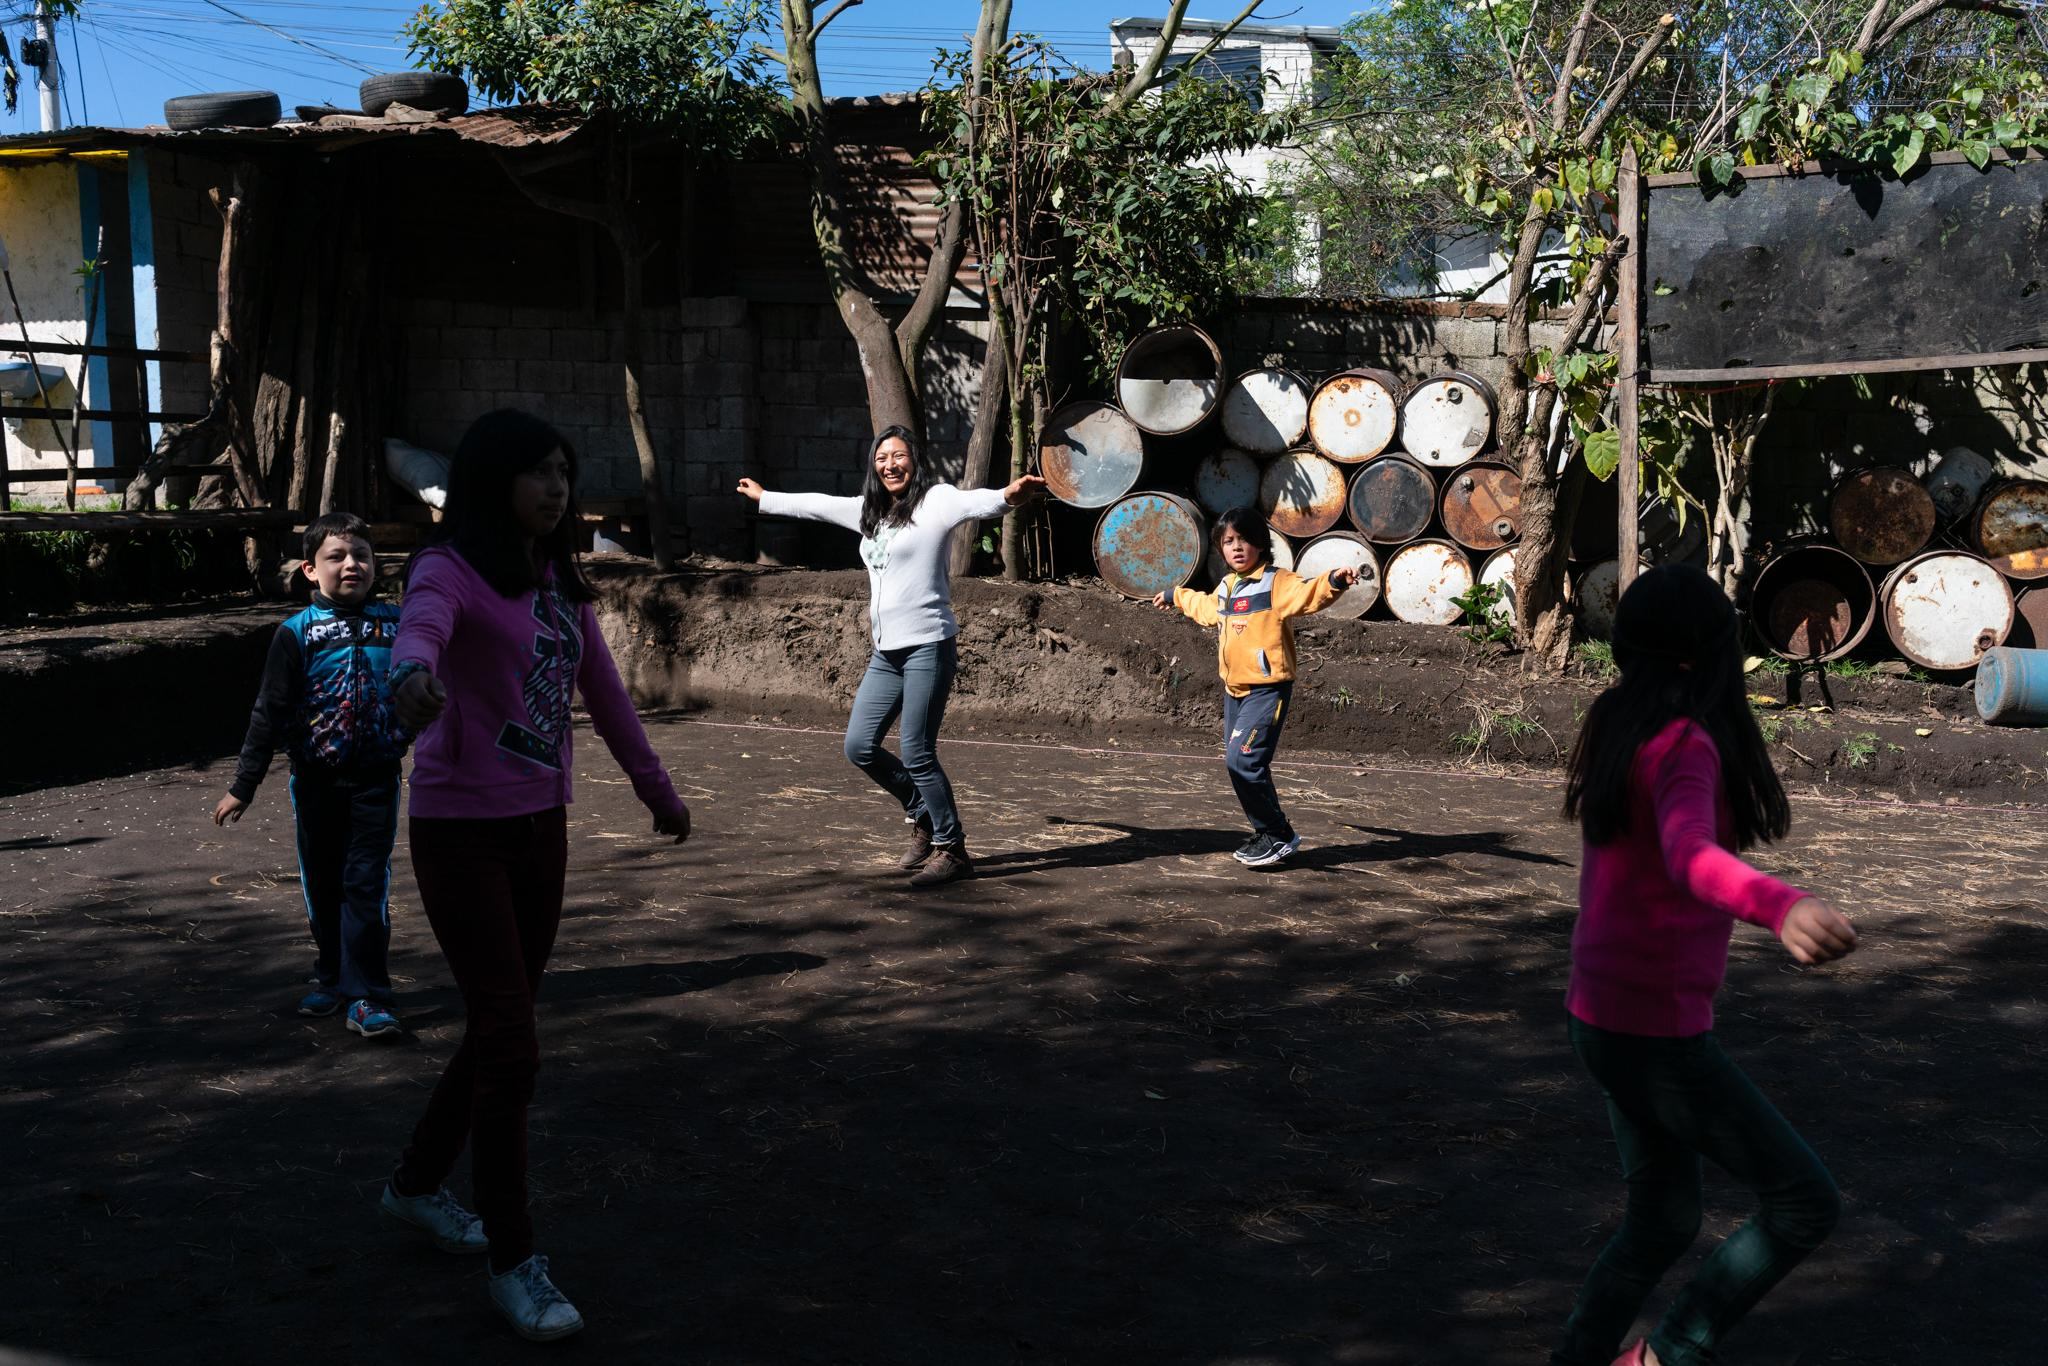 Dina Taco (39) leads a family activity every morning, in which everyone dances and exercises before starting their daily activities. Grandparents (Dina's parents) also participate. Jasid Taquiri Aguayo (7) and Suri Laina Aguayo (10) are elementary school students of the Yachay Wasi Intercultural Bilingual Community School. Located south of Quito in Ecuador. They live with her sister Arelí (14), her mother Dina Taco (39) and her father Juan Andrés Aguayo (34). They live in a big house, their grandparents are their neighbors, and they have a big garden full of plants and some trees. Her parents say that at the beginning of the quarantine it was more fun for the children, but nowadays they miss going to school and sharing with their classmates. Dina, the mother, studies Infant Education at a distance, this has given her tools to closely accompany her children's studies during the confinement. She has created routines for children to make better use of time; at 8:30 they do exercises and dance in the patio, until 11:30 they do their homework, then they play and they also collaborate in certain household responsibilities. They are a family with limited financial resources, the Covid19 has left the two parents without work, however, they can lean on their grandparents. They are a family with a broad vision of social work. Photographer: Ana Maria Buitron. Quito, Ecuador. Dina Taco (39) lidera todas las mañanas una actividad famliar, en la que todos bailan y hacen ejercicios antes de empezar sus actividades cotidianas. Hacen parte de esto también los abuelos (padres de Dina). Jasid Taquiri Aguayo (7) y Suri Laina Aguayo (10) son estudiantes de primaria de la Escuela Comunitaria Intercultural Bilingüe Yachay Wasi. Ubicada al sur de Quito en Ecuador. Viven con su hermana Arelí (14), su madre Dina Taco (39) y su padre Juan Andrés Aguayo (34). Viven en una casa grande, sus abuelos son sus vecinos y tienen un jardín grande lleno de planta y algunos árboles. Sus